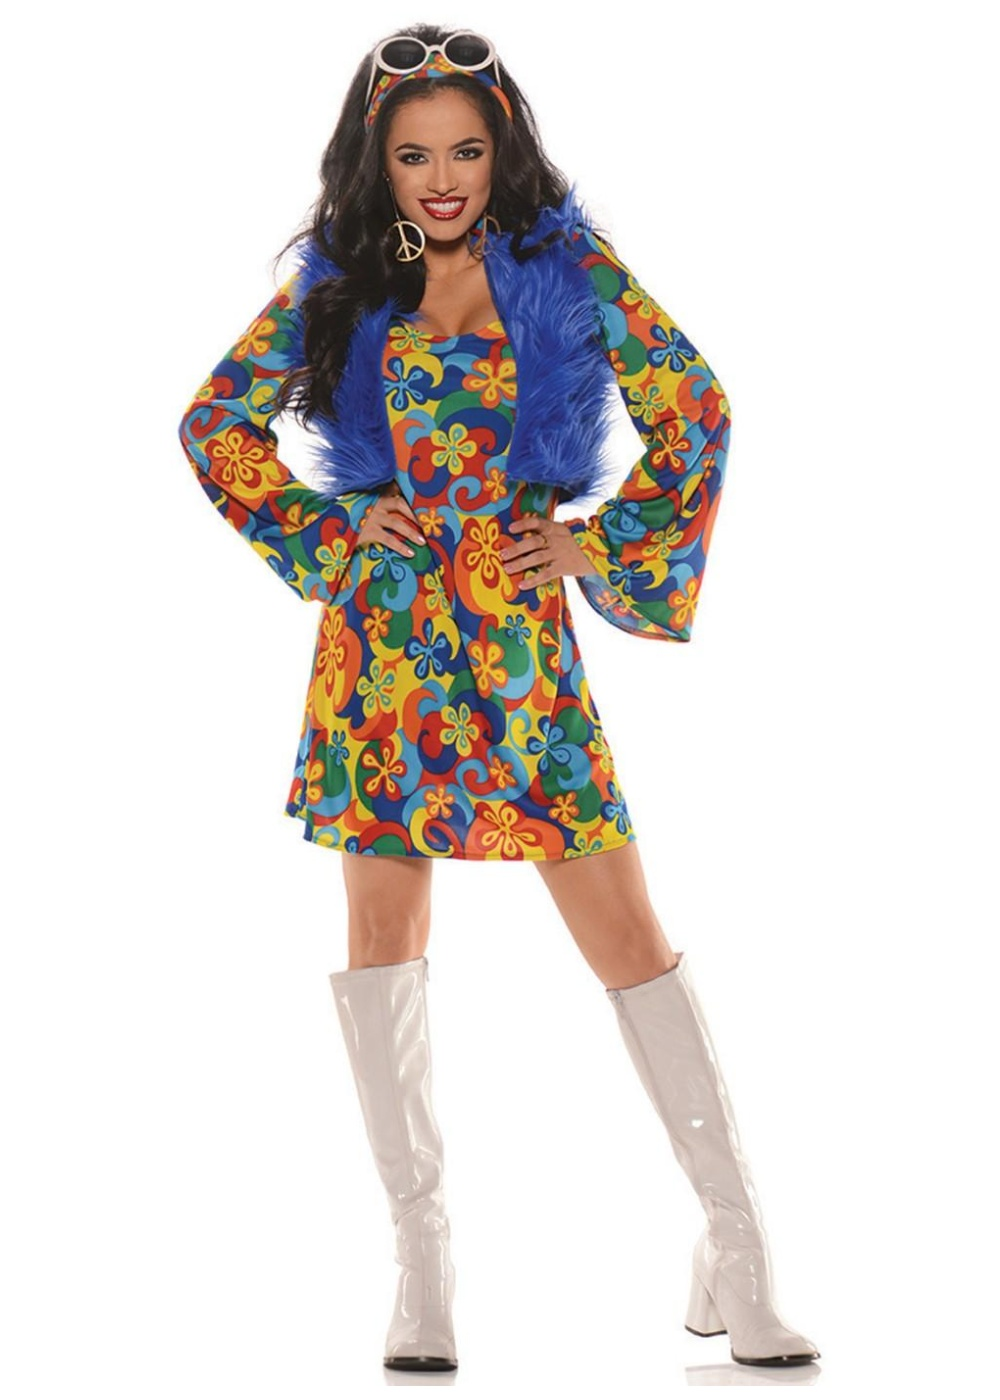 Groovy Gal Disco Hippie Womens Costume Costumes